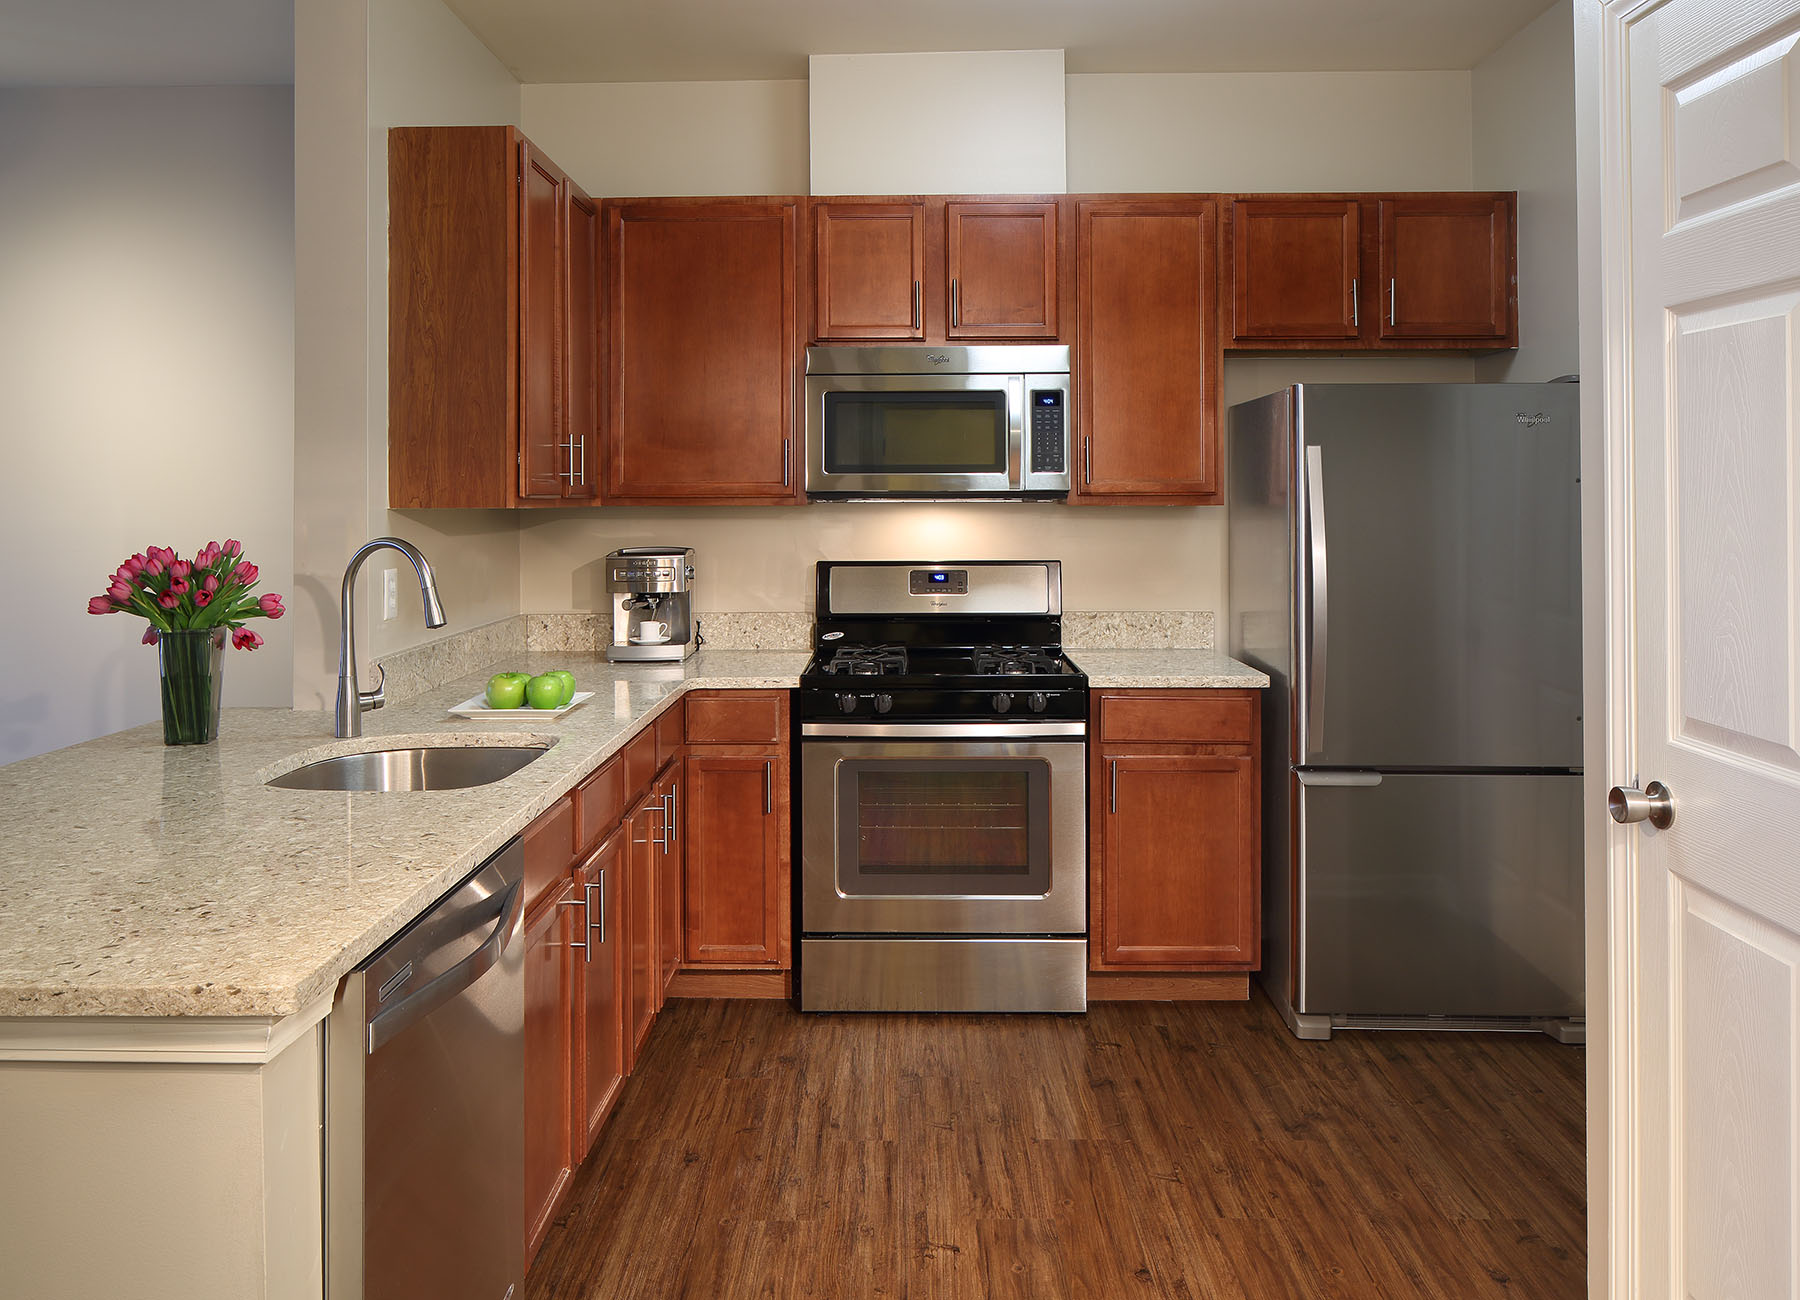 Clean kitchen with large countertops, warm wood cabinets, and stainless steel appliances